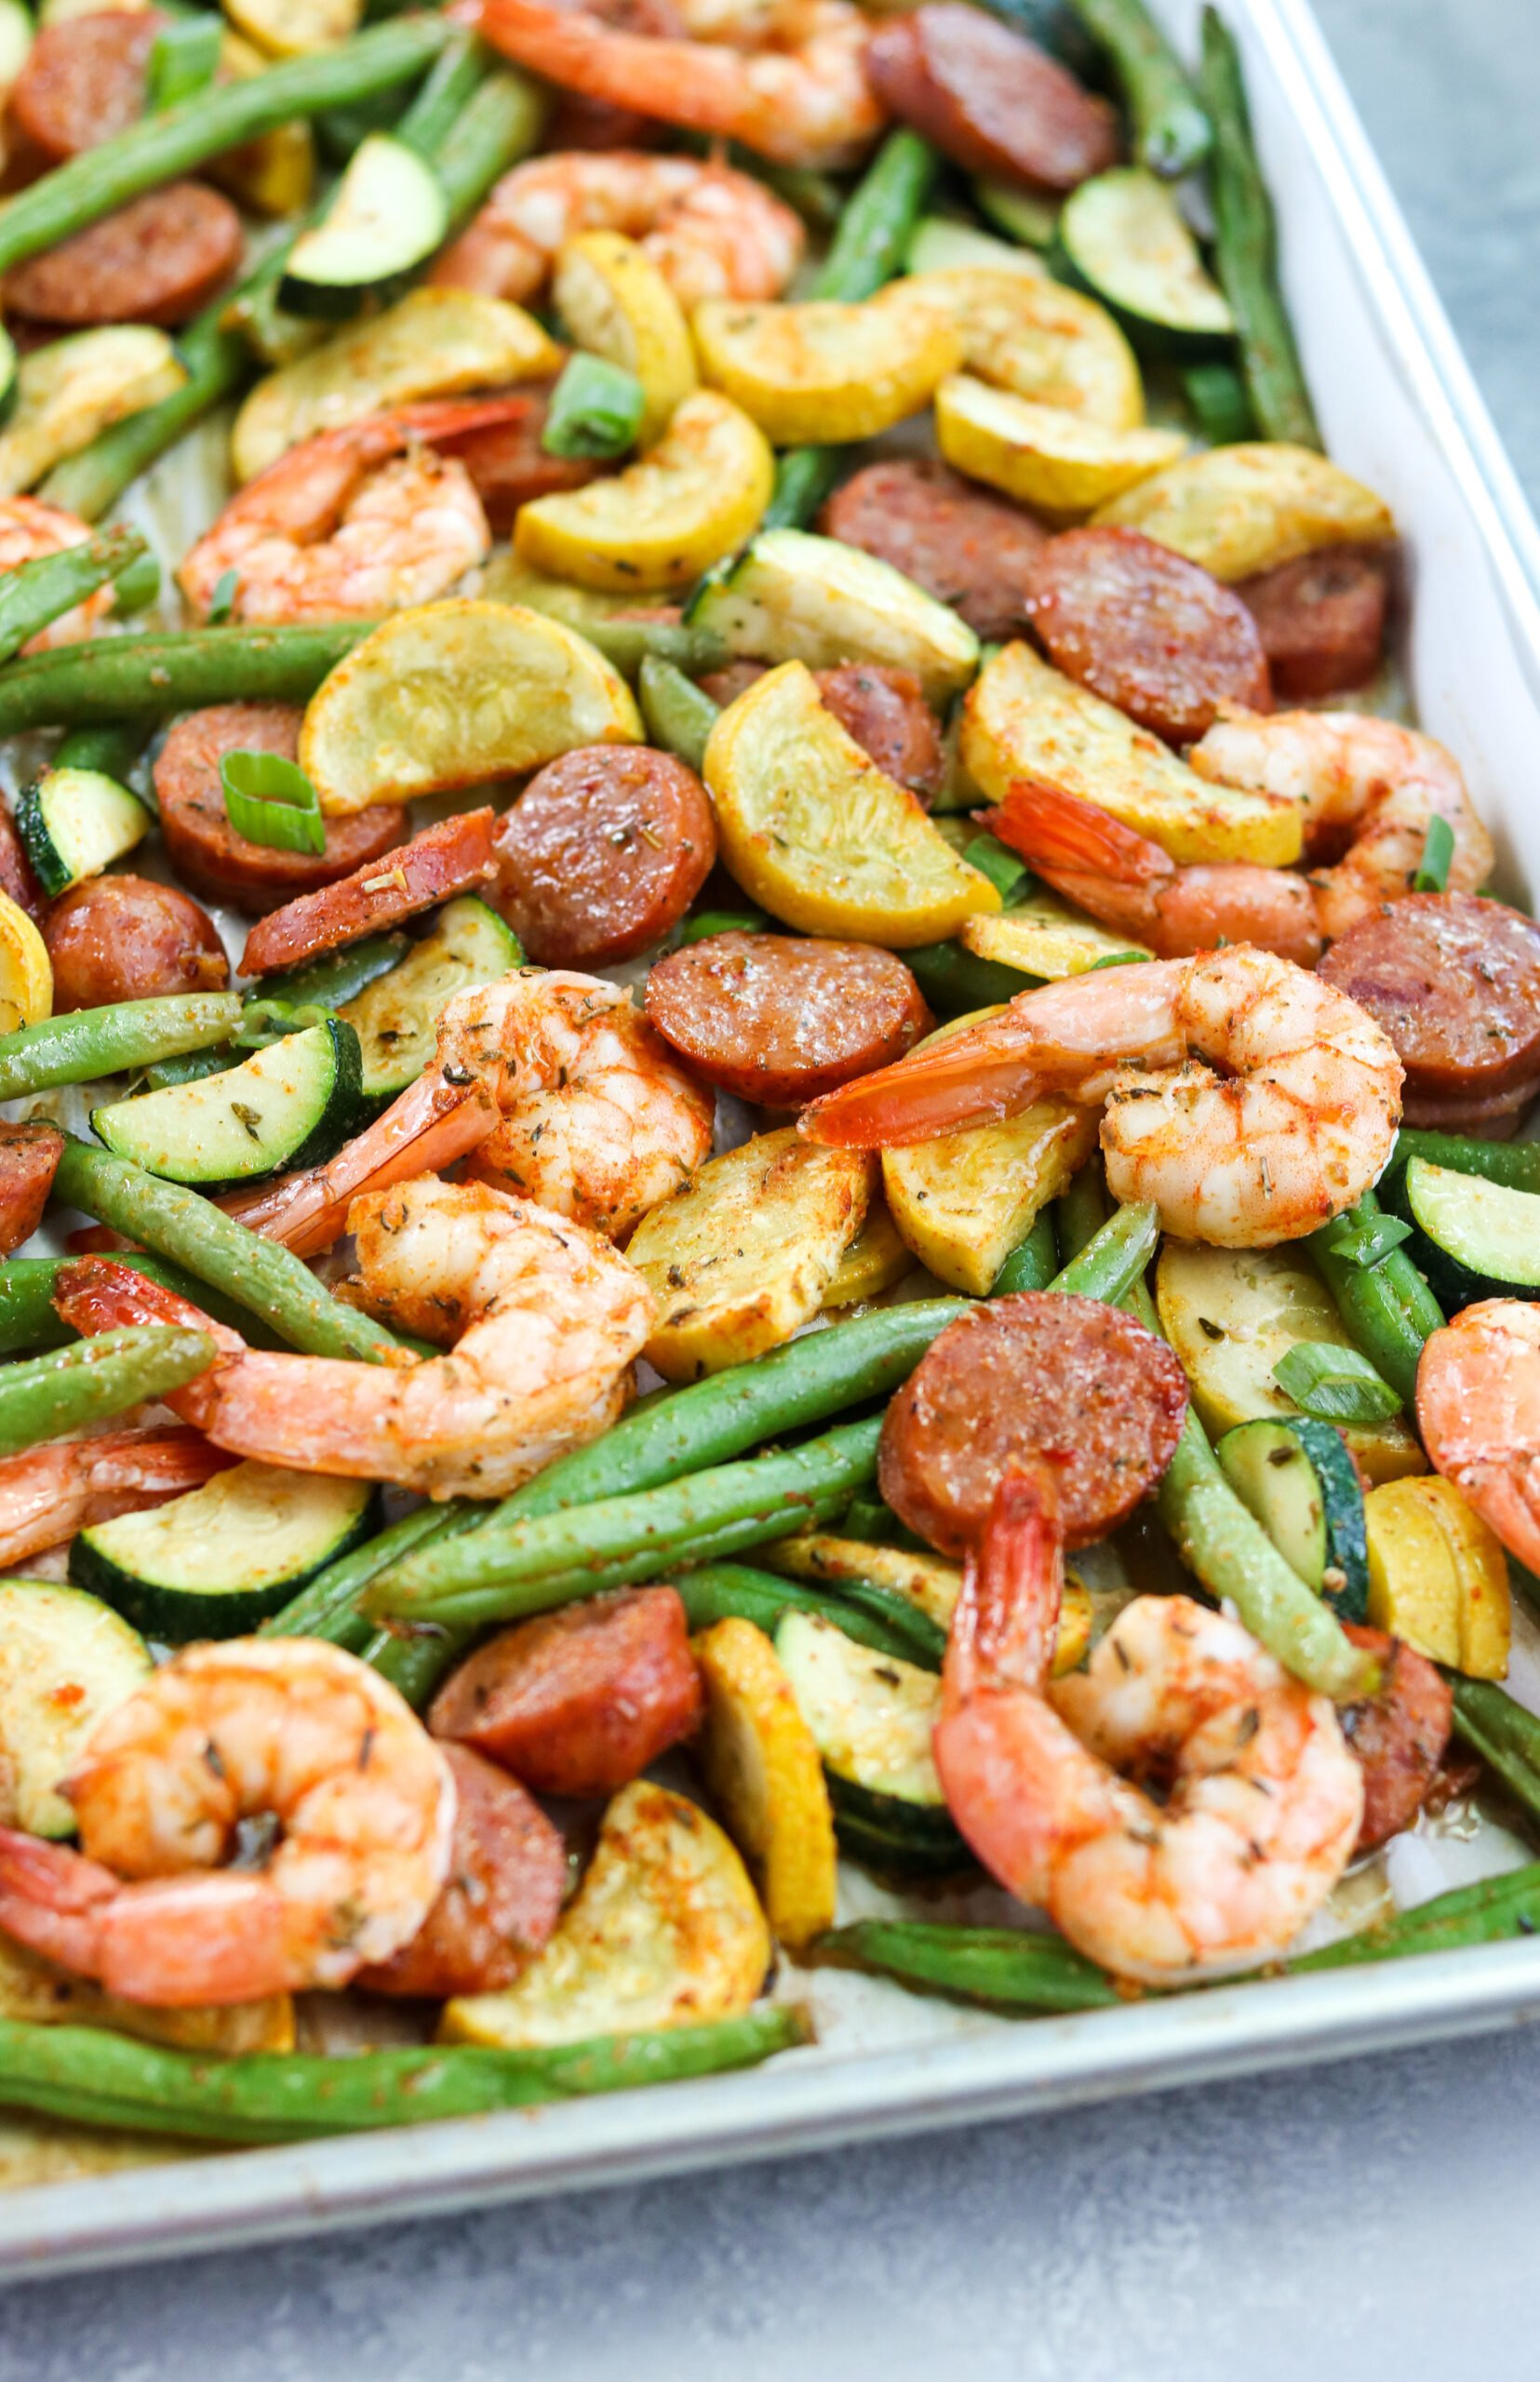 top view of seafood and vegetables in a pan